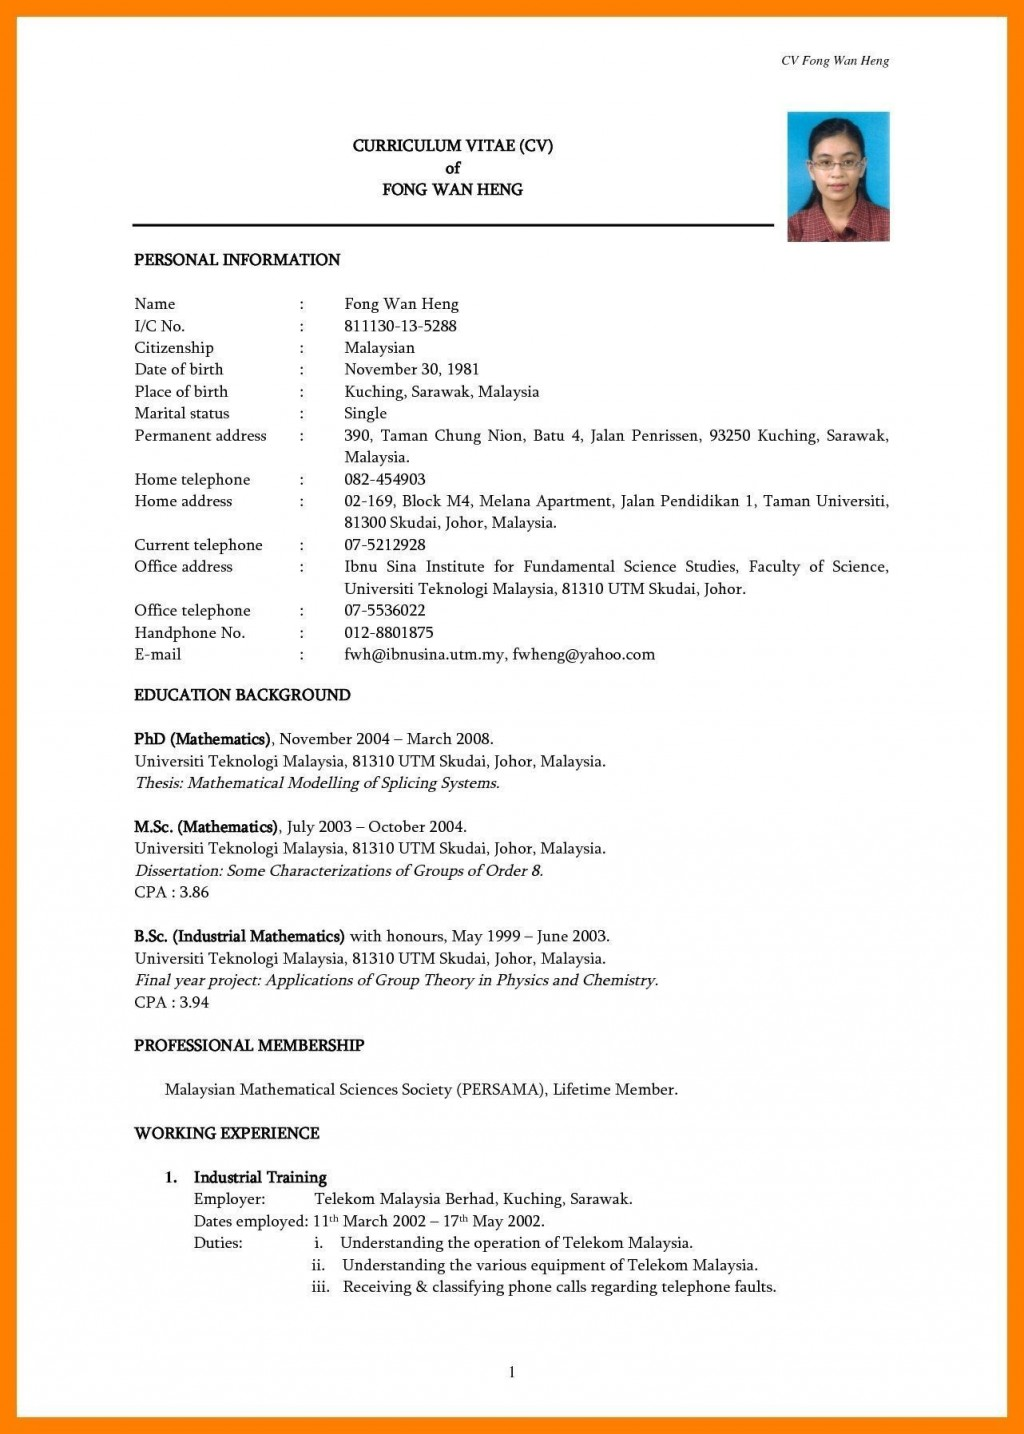 001 Remarkable Resume Example Pdf Free Download Highest Clarity Large